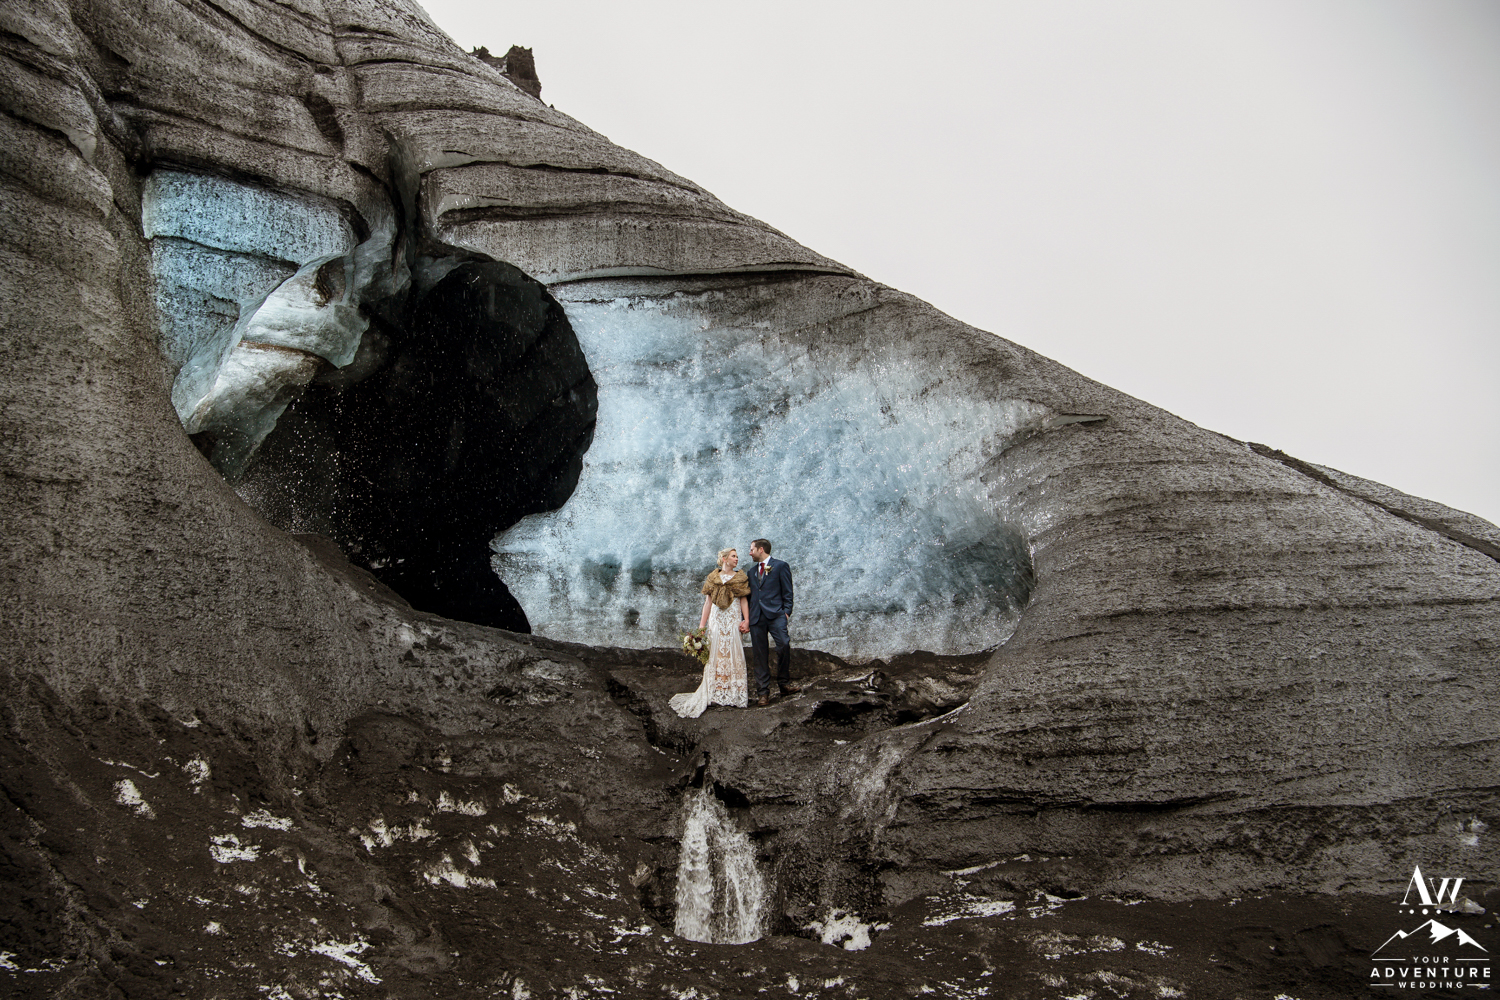 Ice Cave Elopement Photos at a Glacier in Iceland